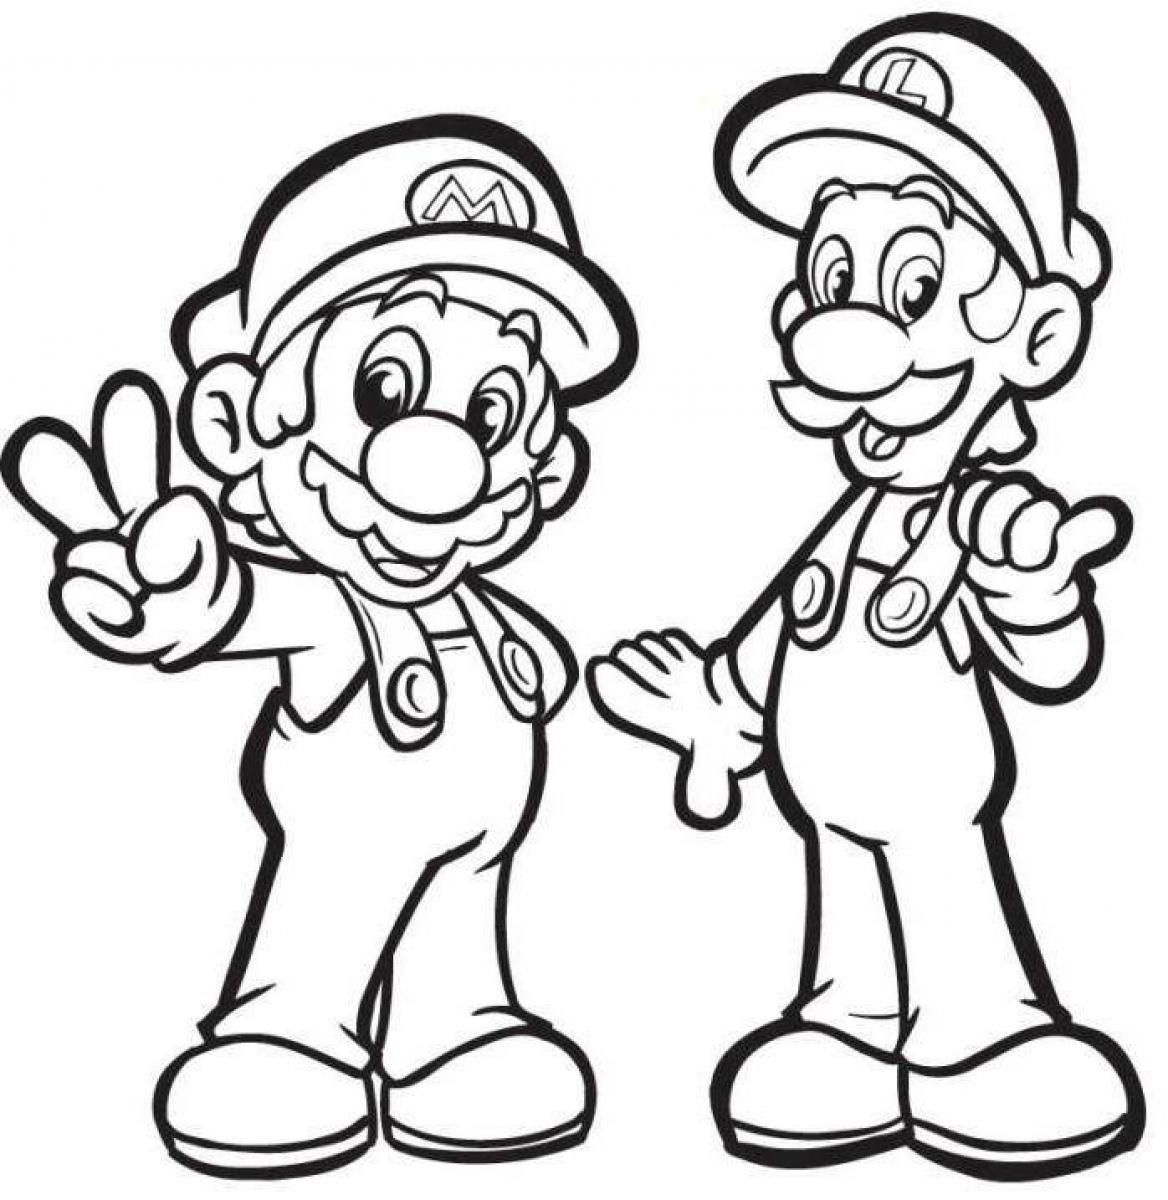 luigi coloring pages printable luigi coloring pages free luigi